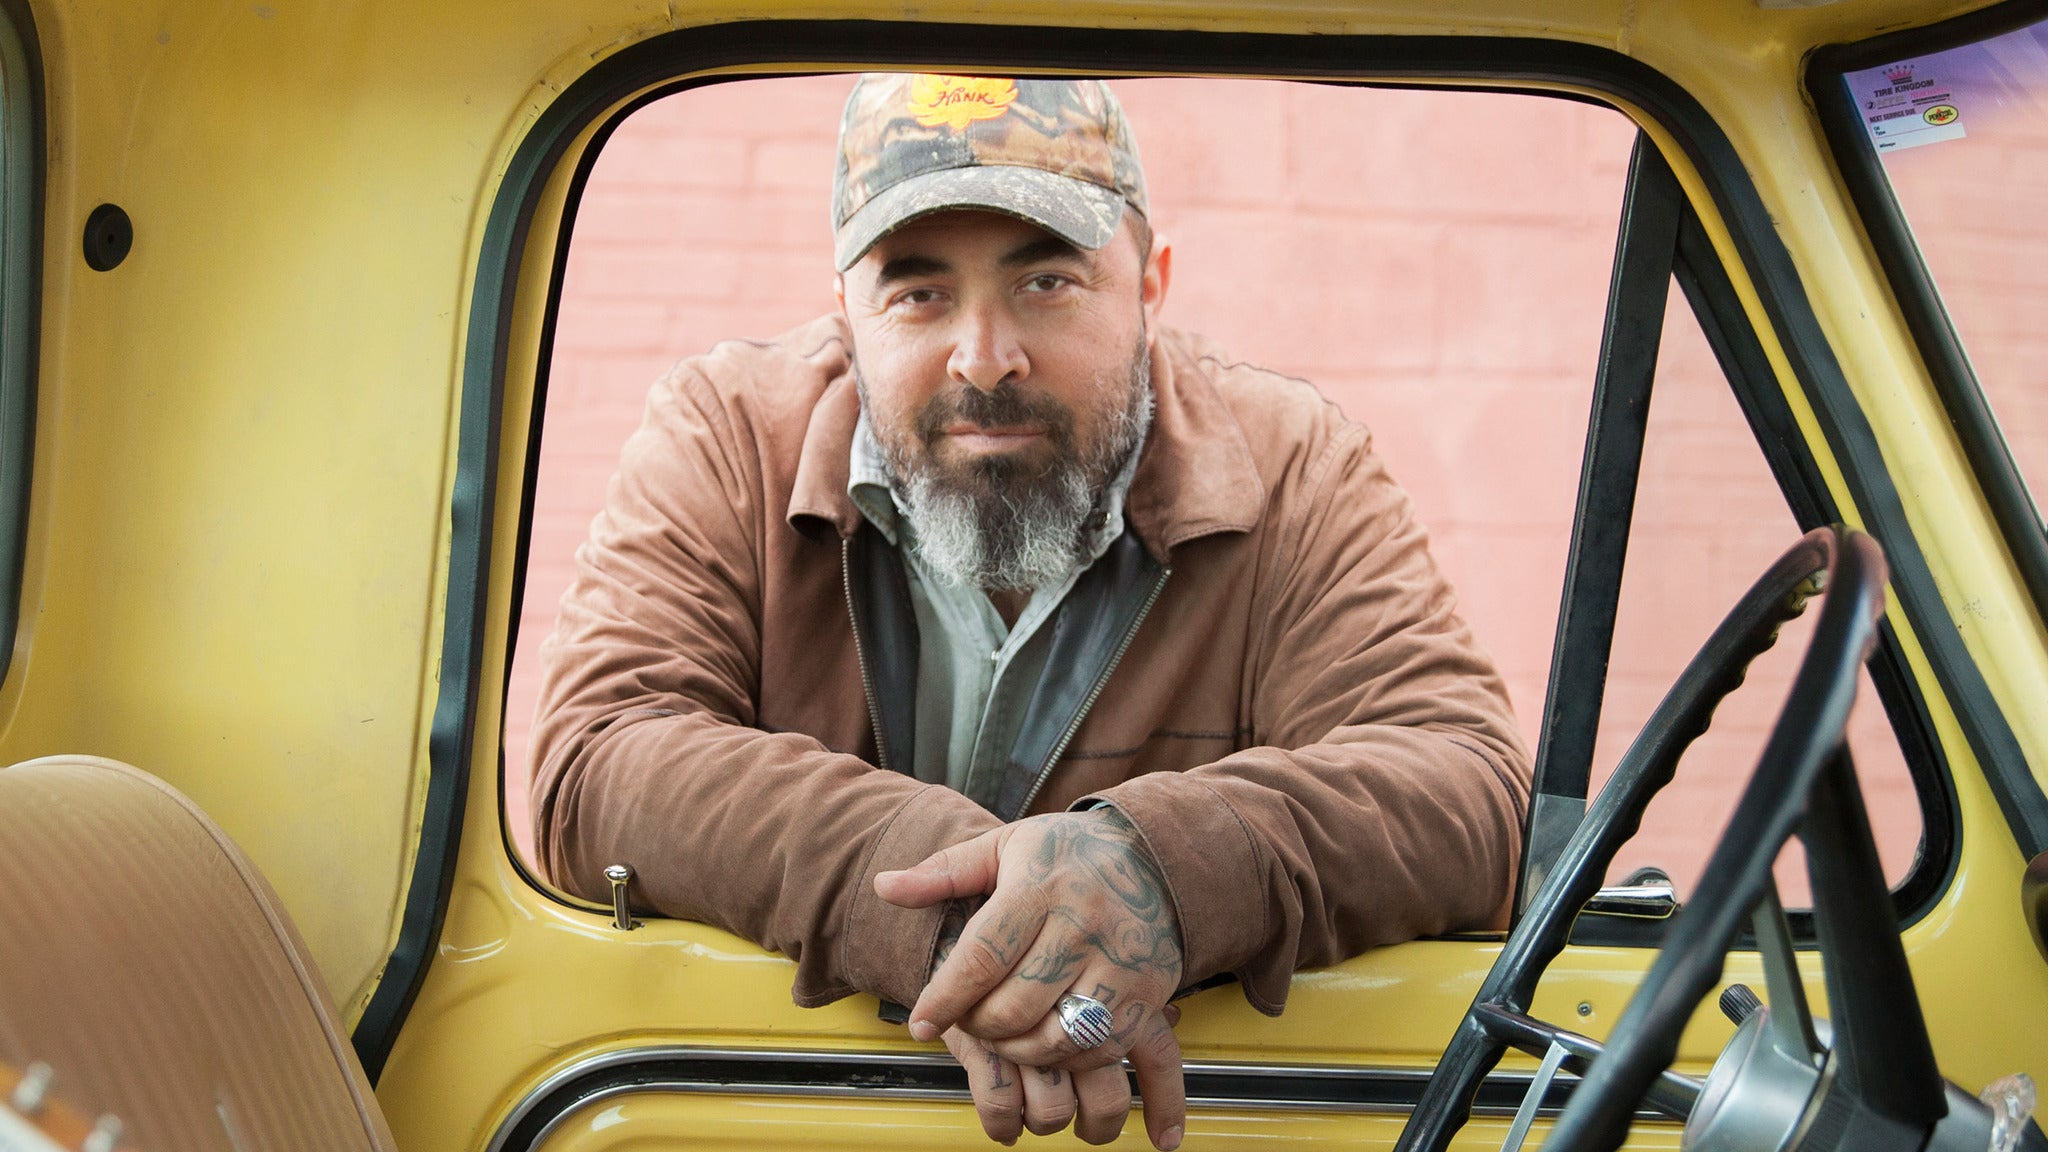 Aaron Lewis at The Grand Theater at Foxwoods Resort Casino